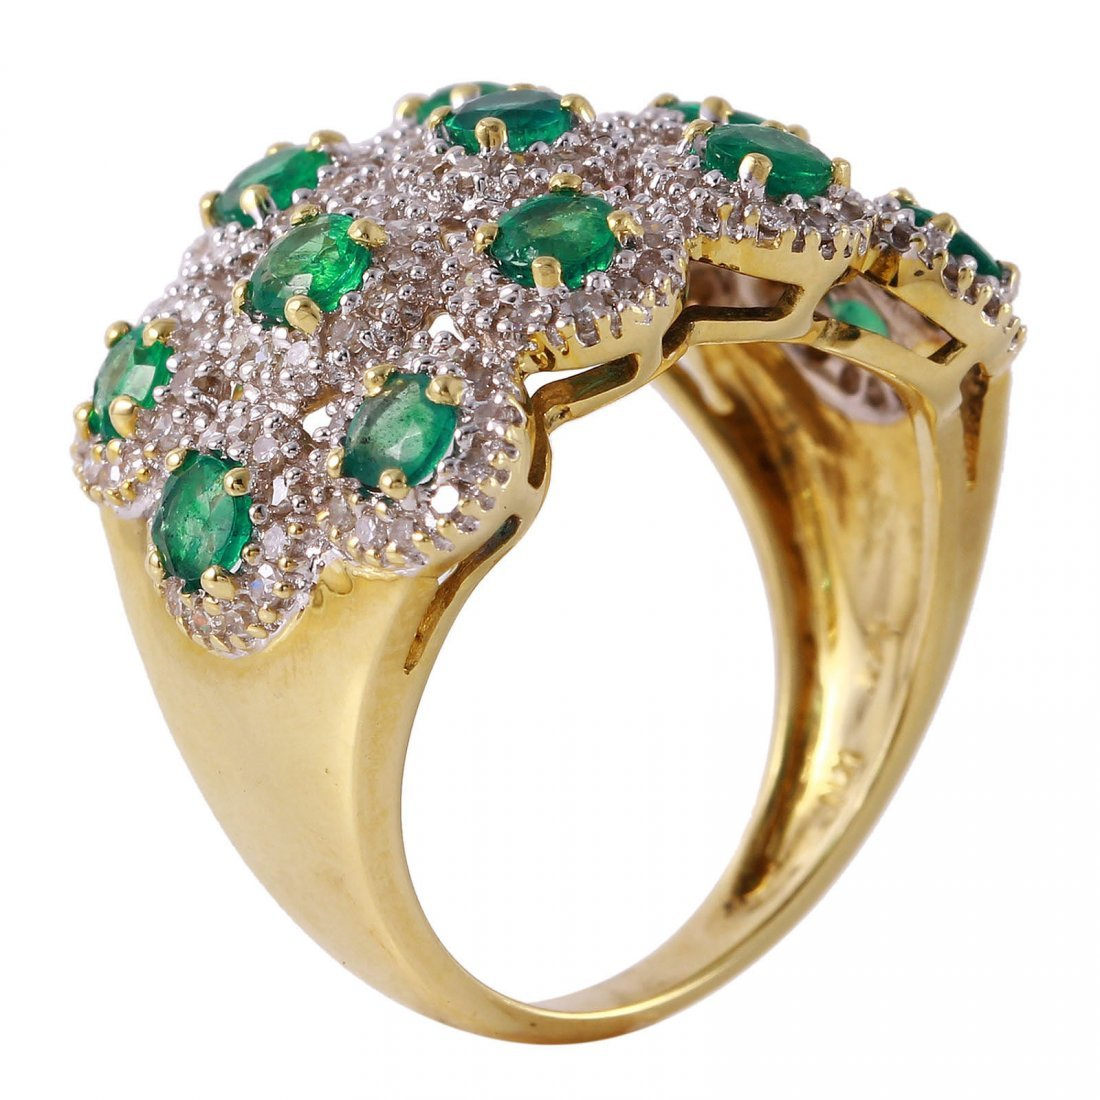 14KT Yellow Gold Emerald and Diamond Ring - 2